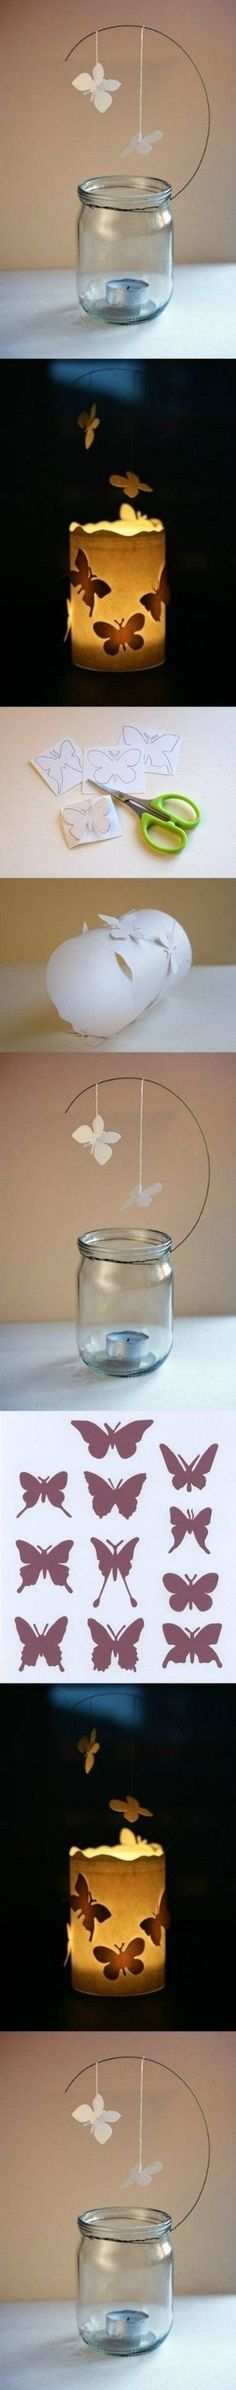 DIY Butterfly Candle Decor. Very pretty!